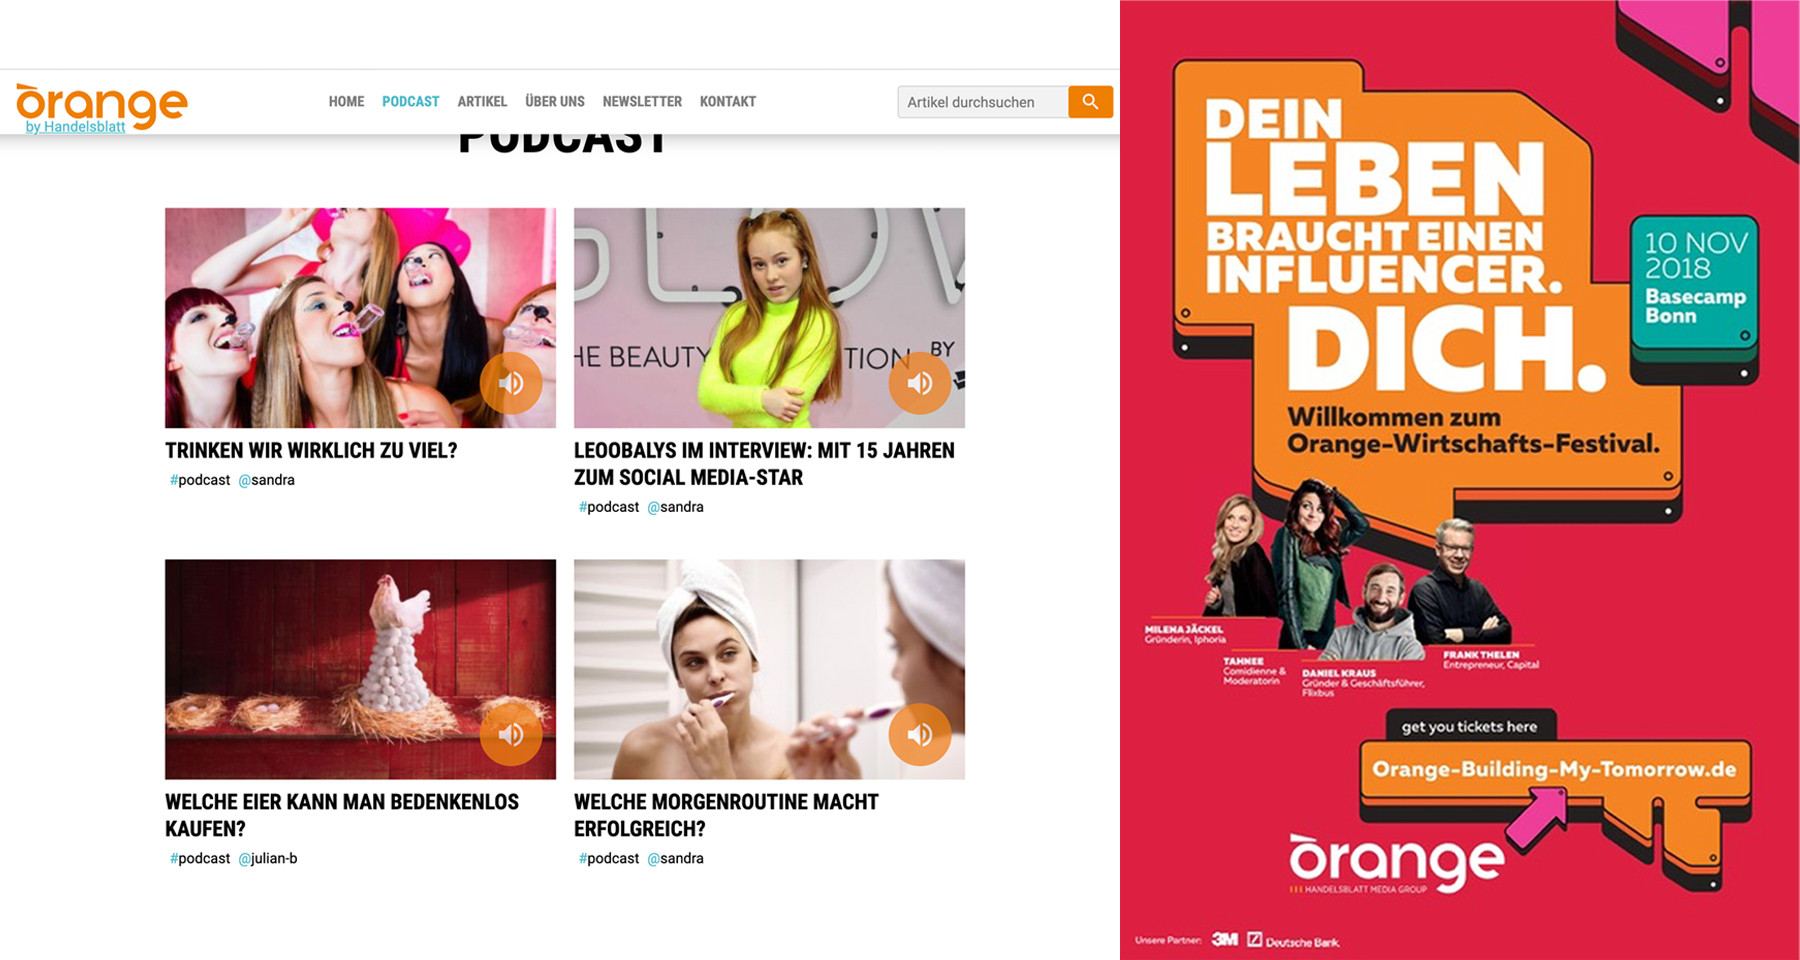 Handelsblatt launches print spin-off from successful youth portal